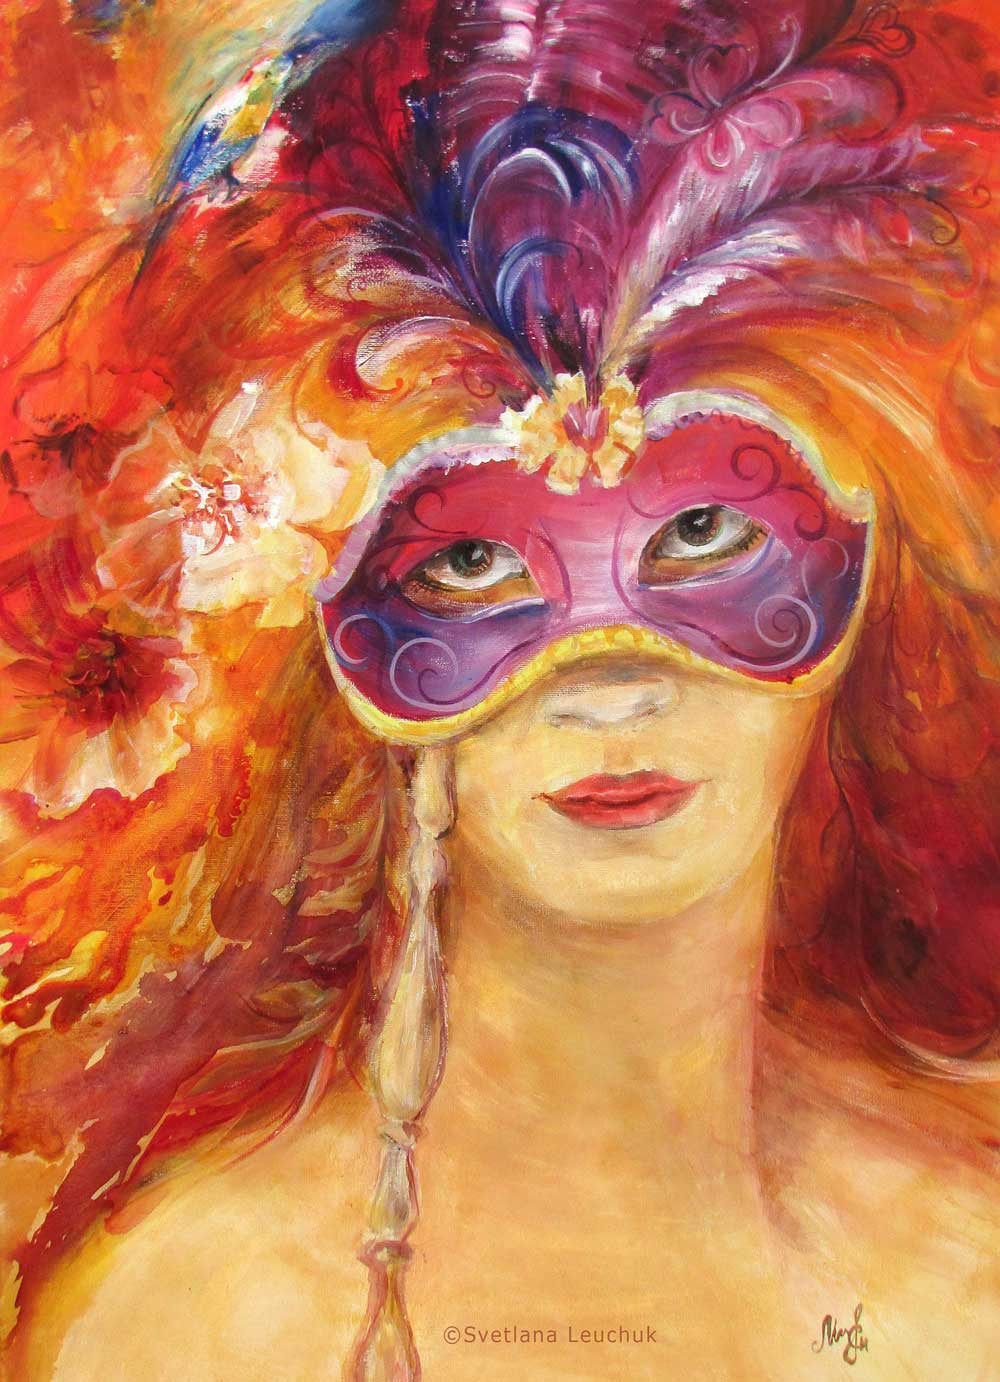 acrylic-painting-The-Girl-Behind-The-Mask-Lanagraphic